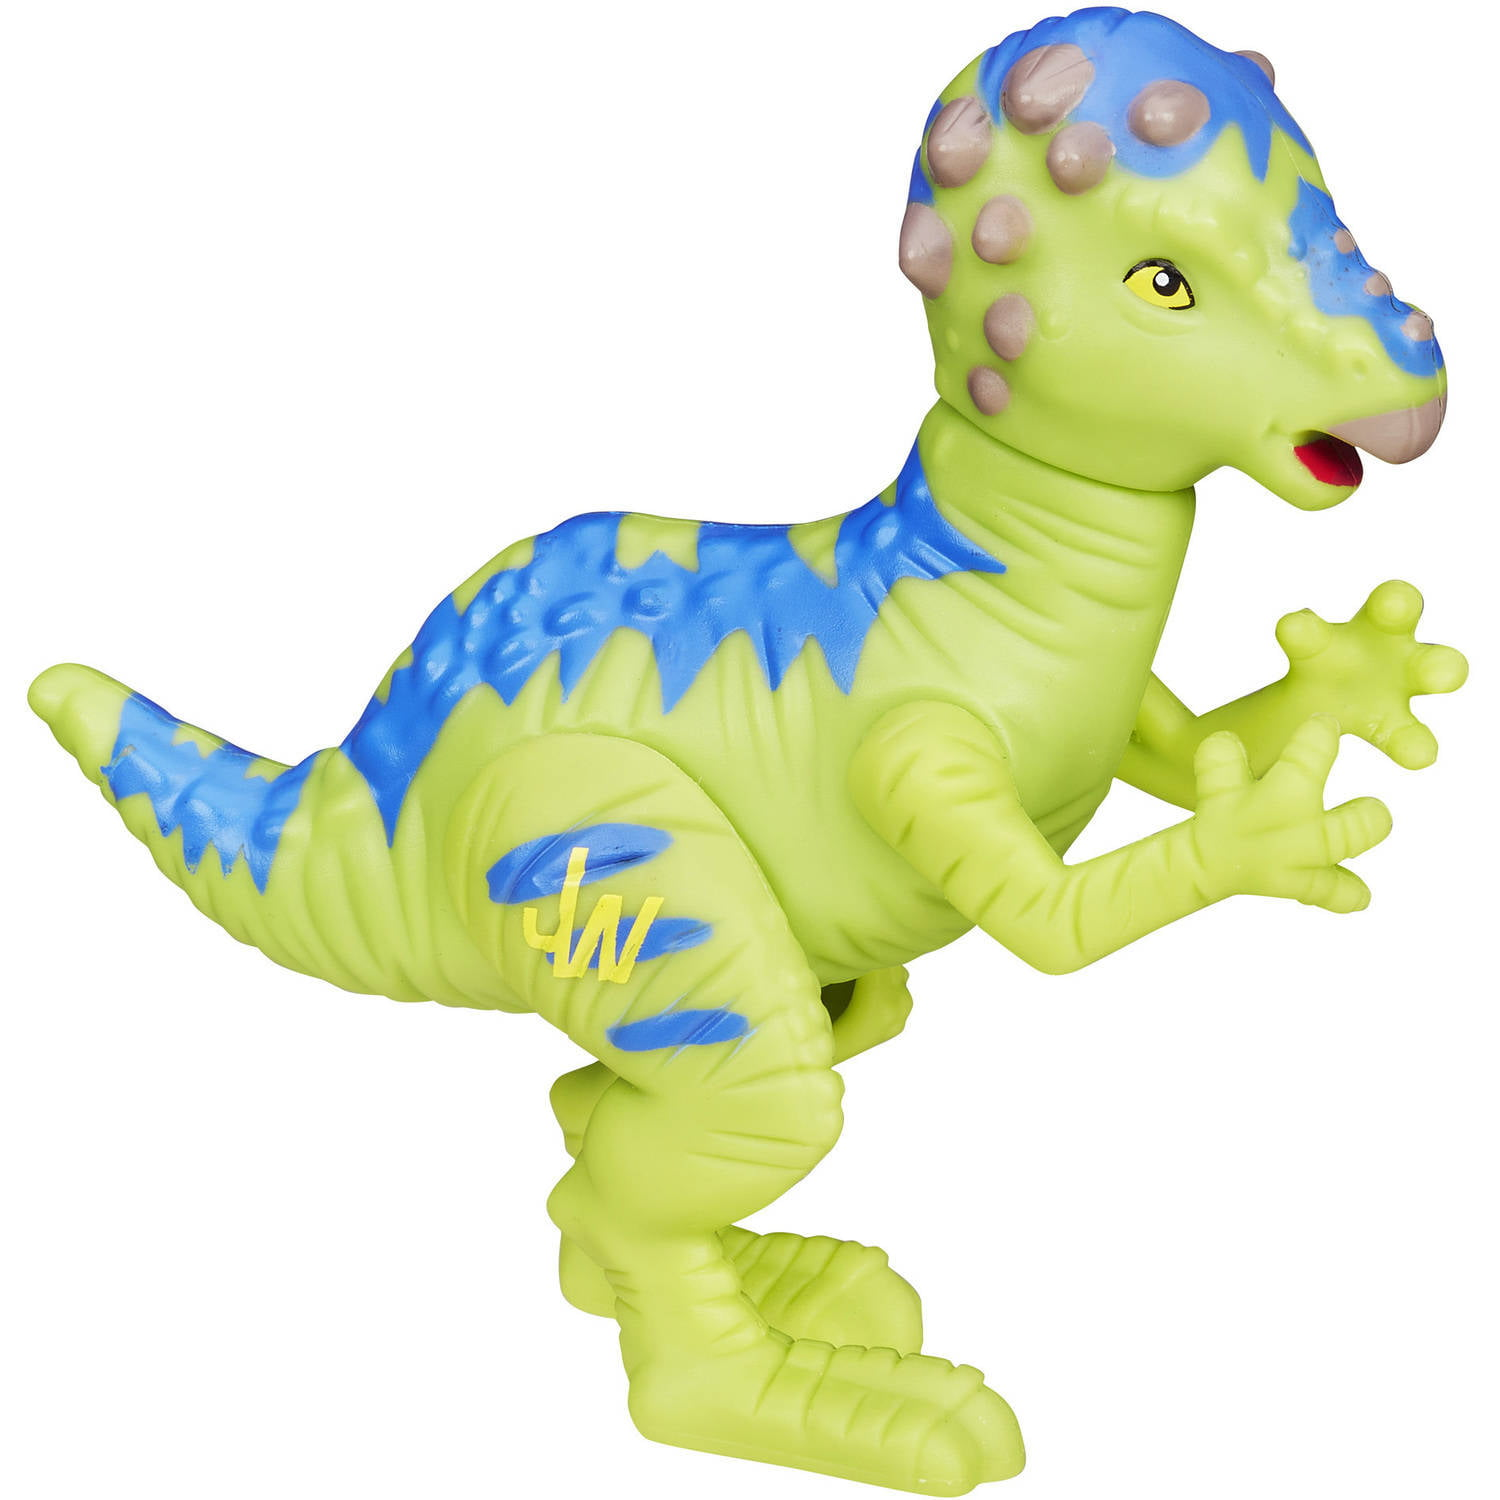 Playskool Heroes Jurassic World Pachycephalosaurus by Jurassic World